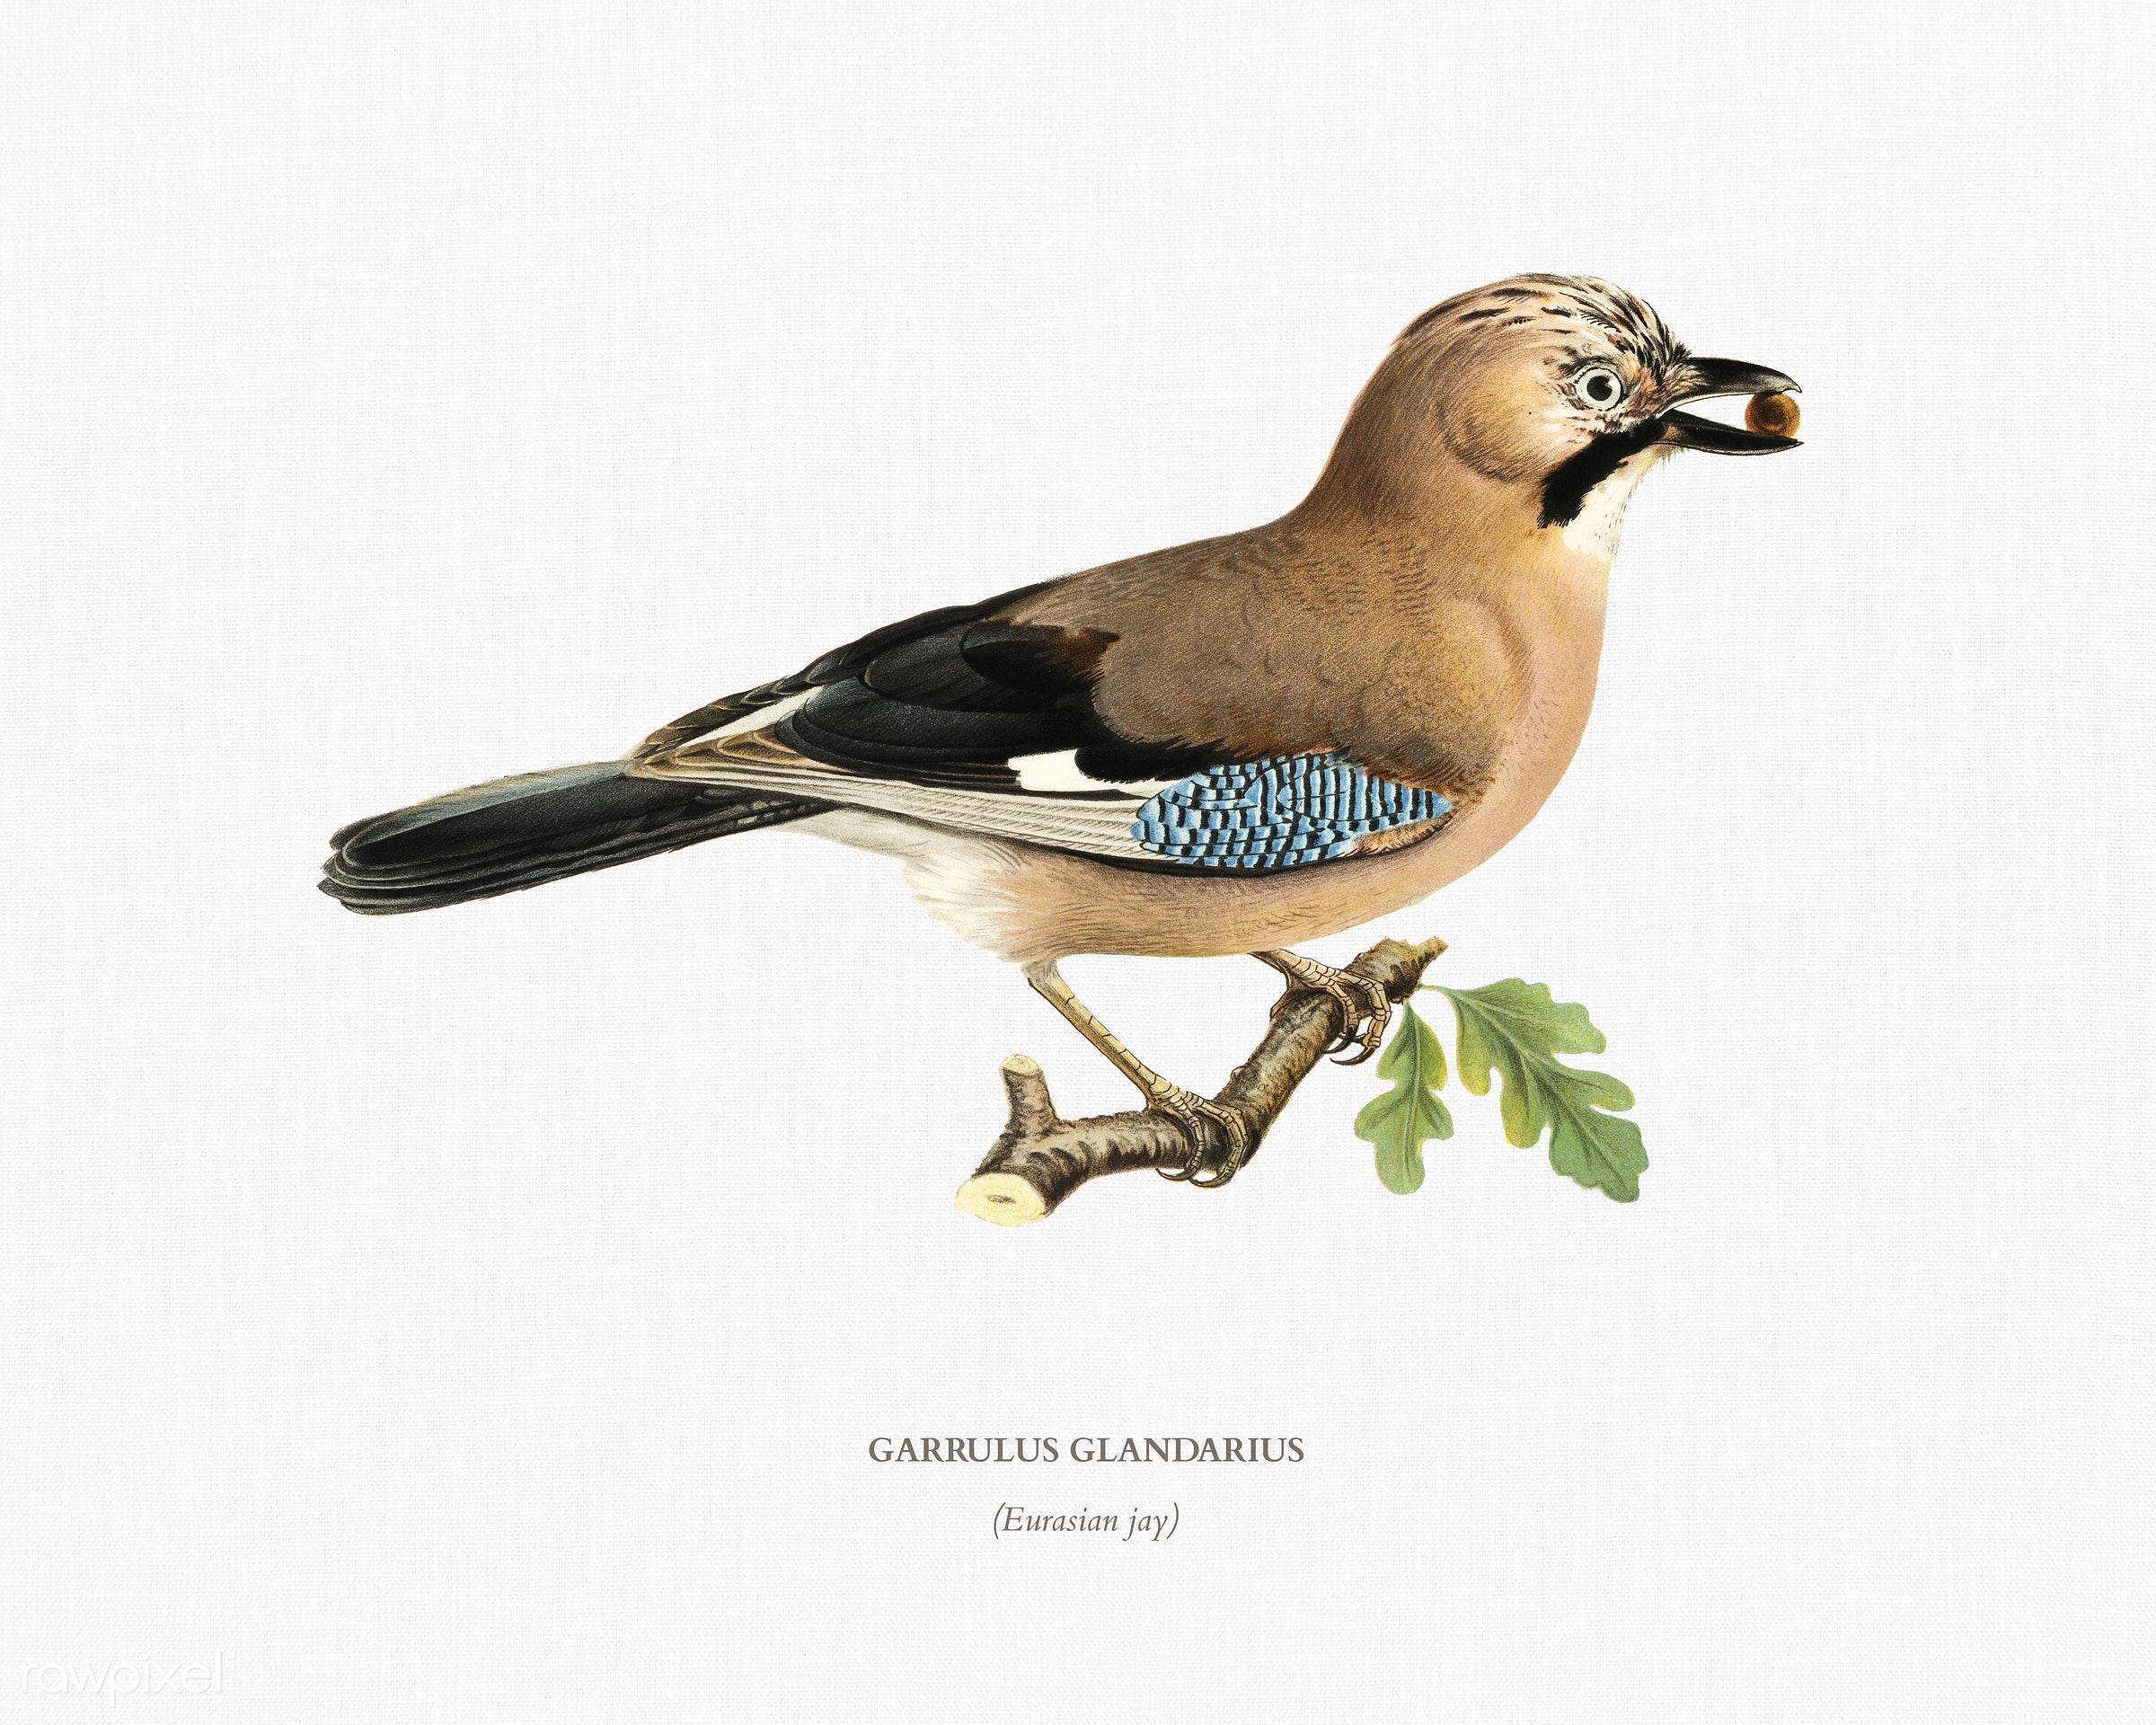 Eurasian jay (Garrulus glandarius) illustrated by the von Wright brothers. Digitally enhanced from our own 1929 folio...